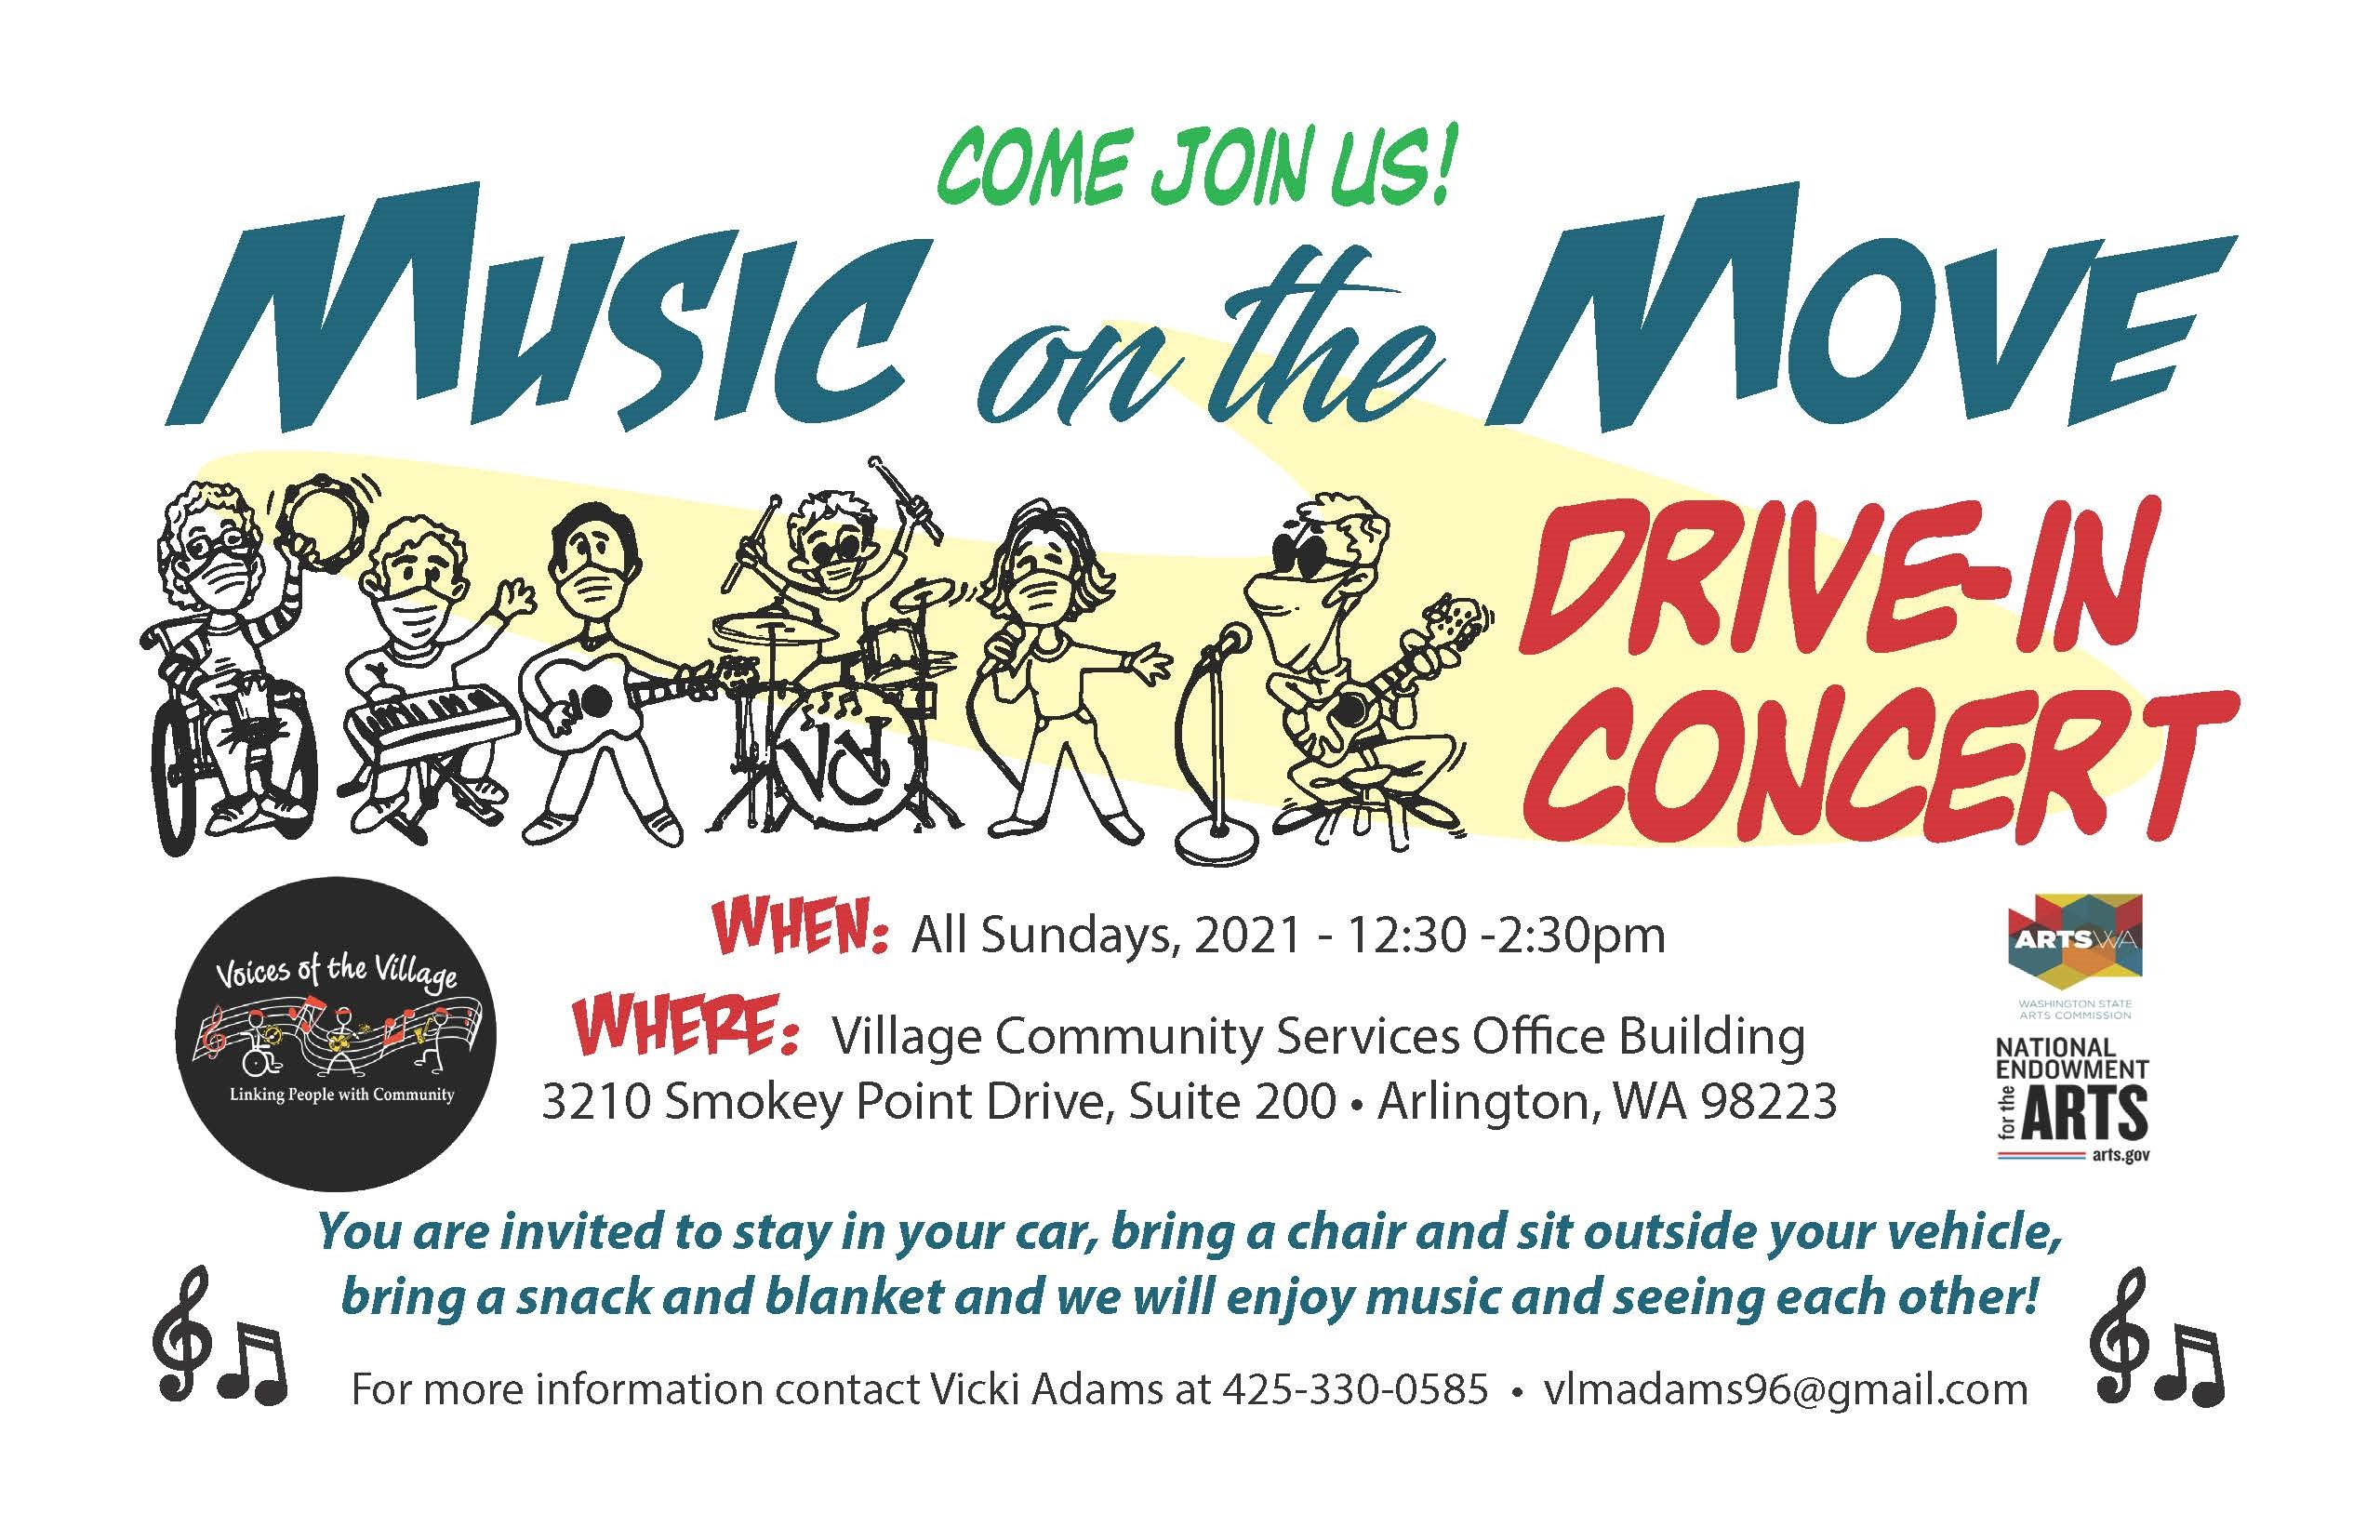 VOV-music on the move-2021 jpeg for social media